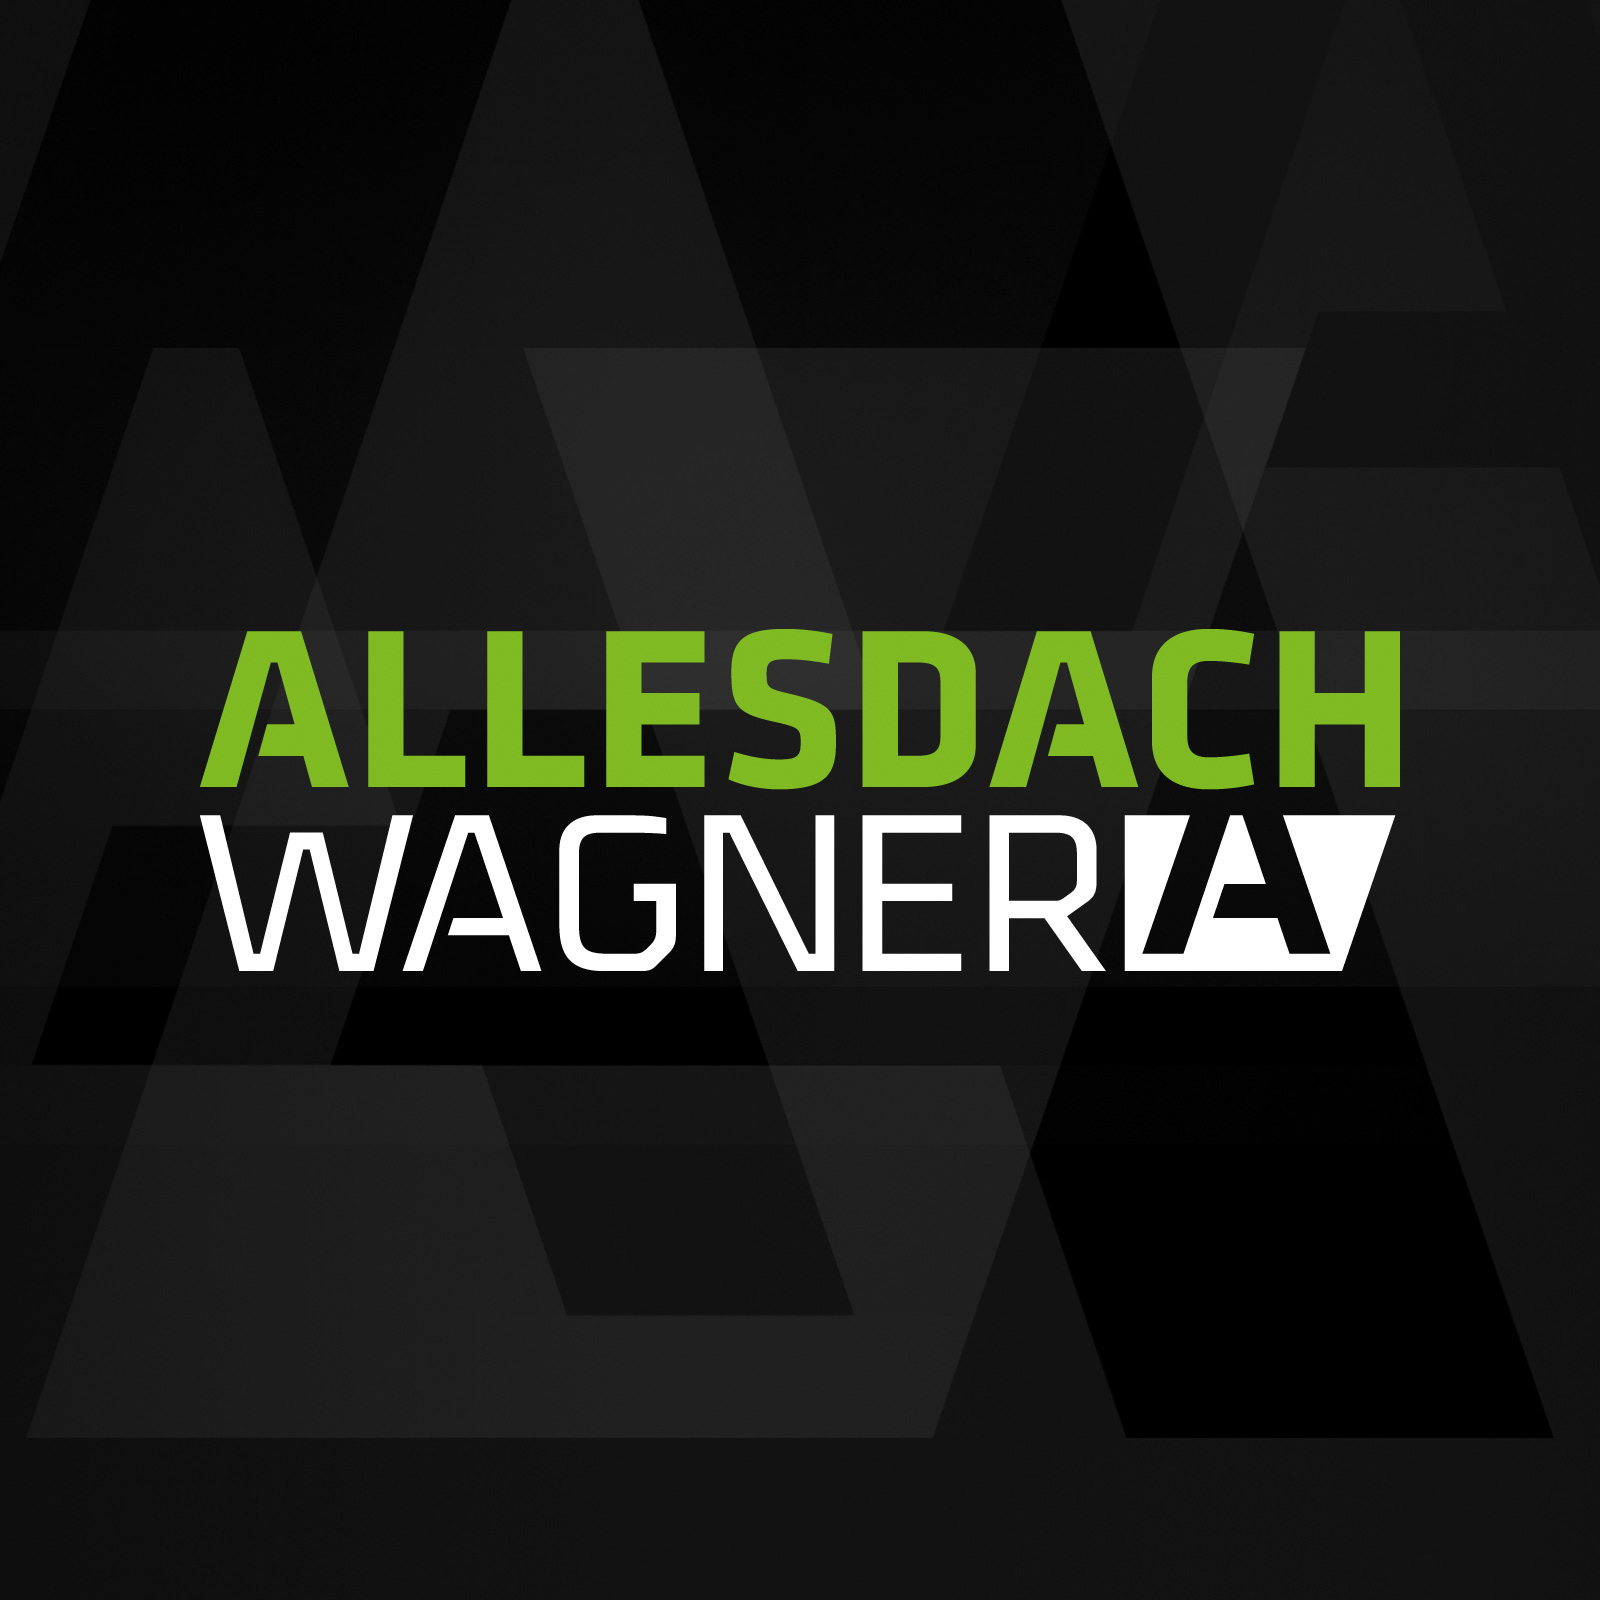 AllesDach Wagner